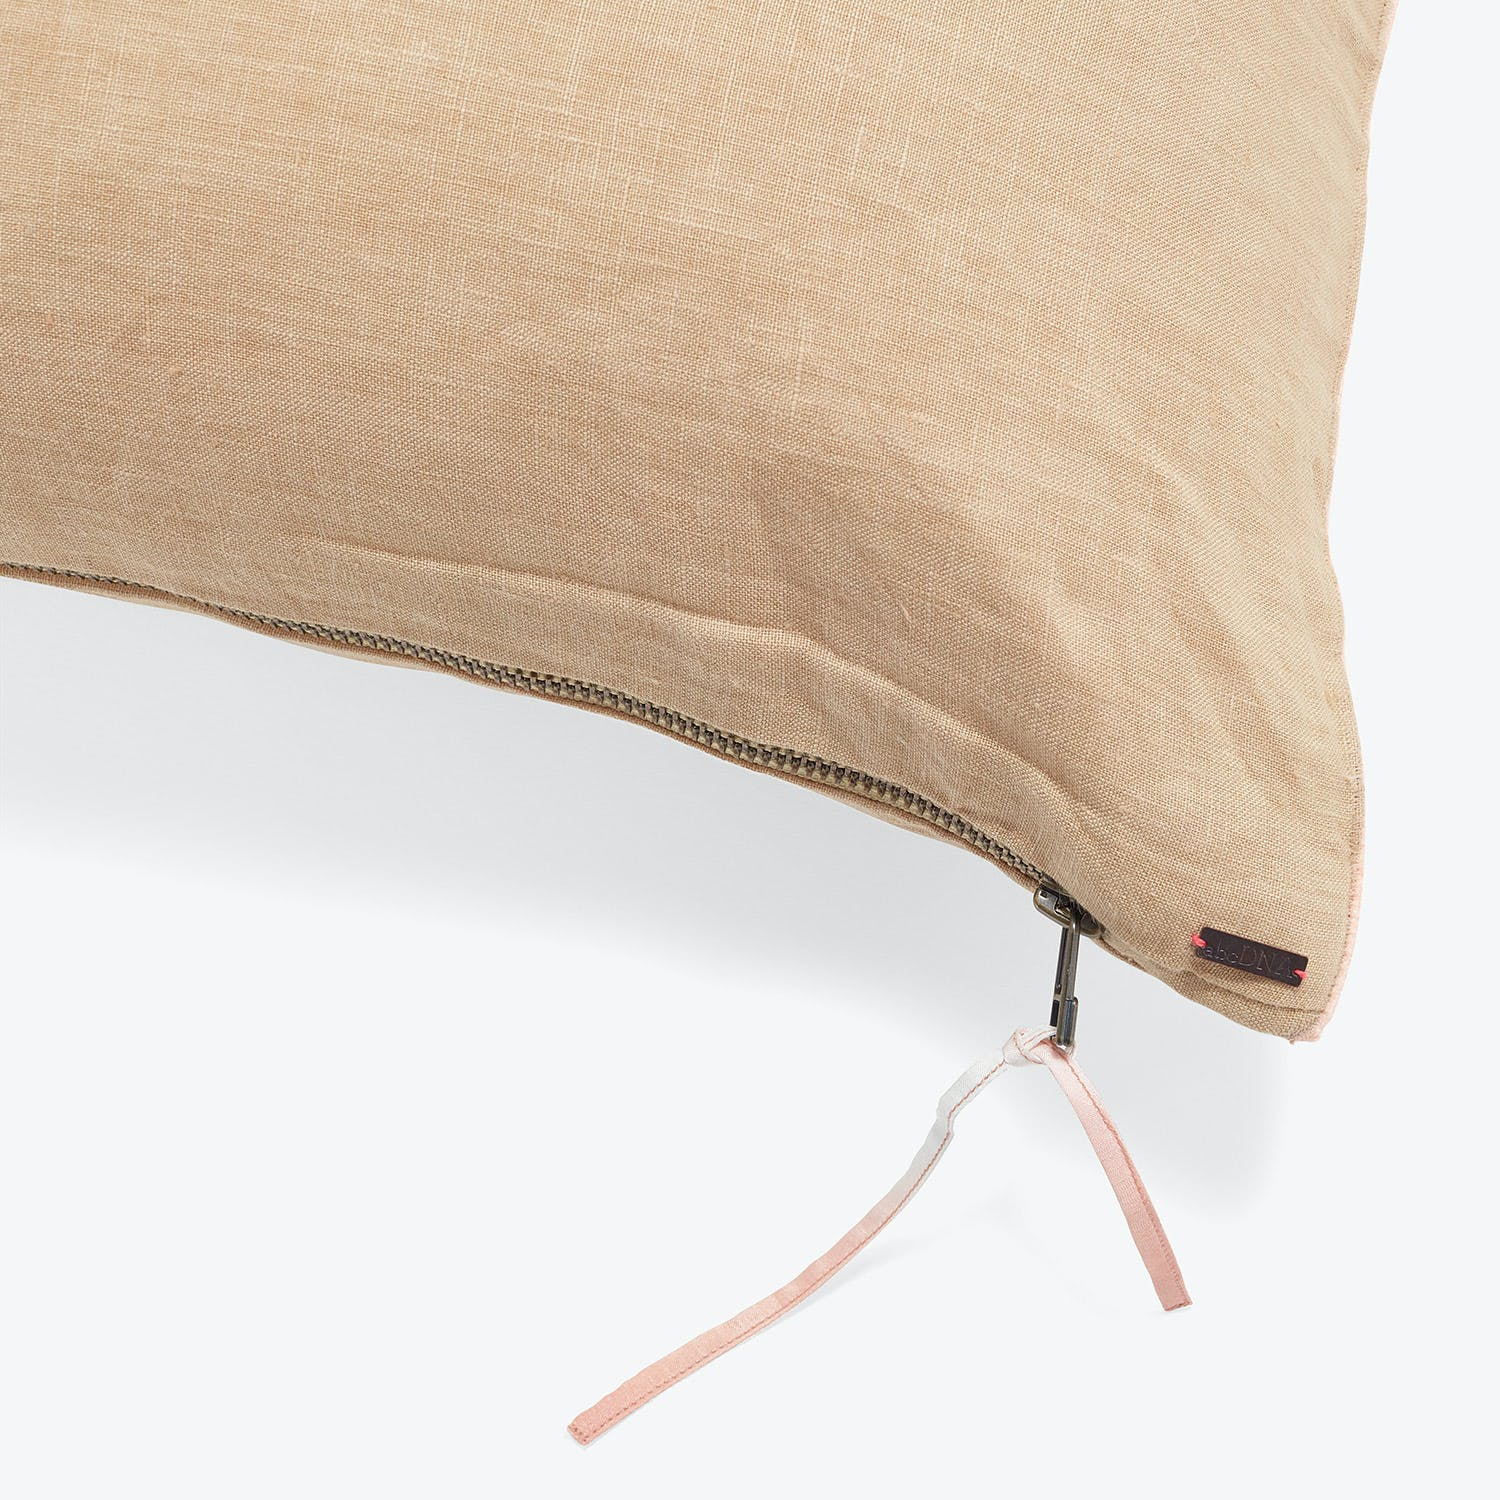 abcDNA Glo Pillow Ochre